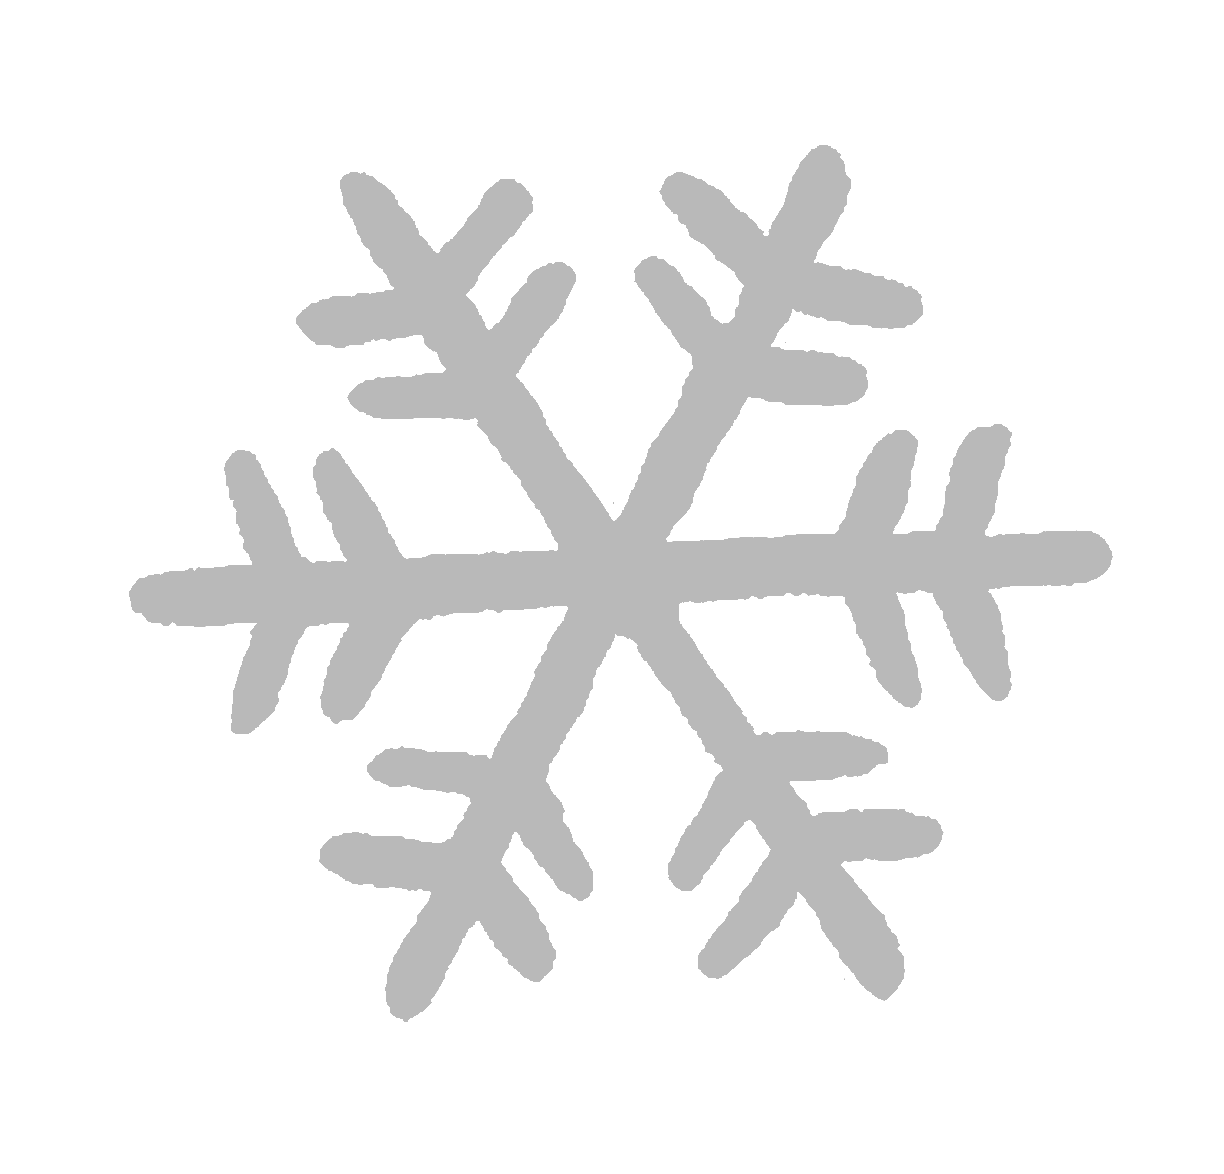 Snowflake text clipart black and white library The Graphics Monarch: Digital Snowflake Silhouette Downloads ... black and white library